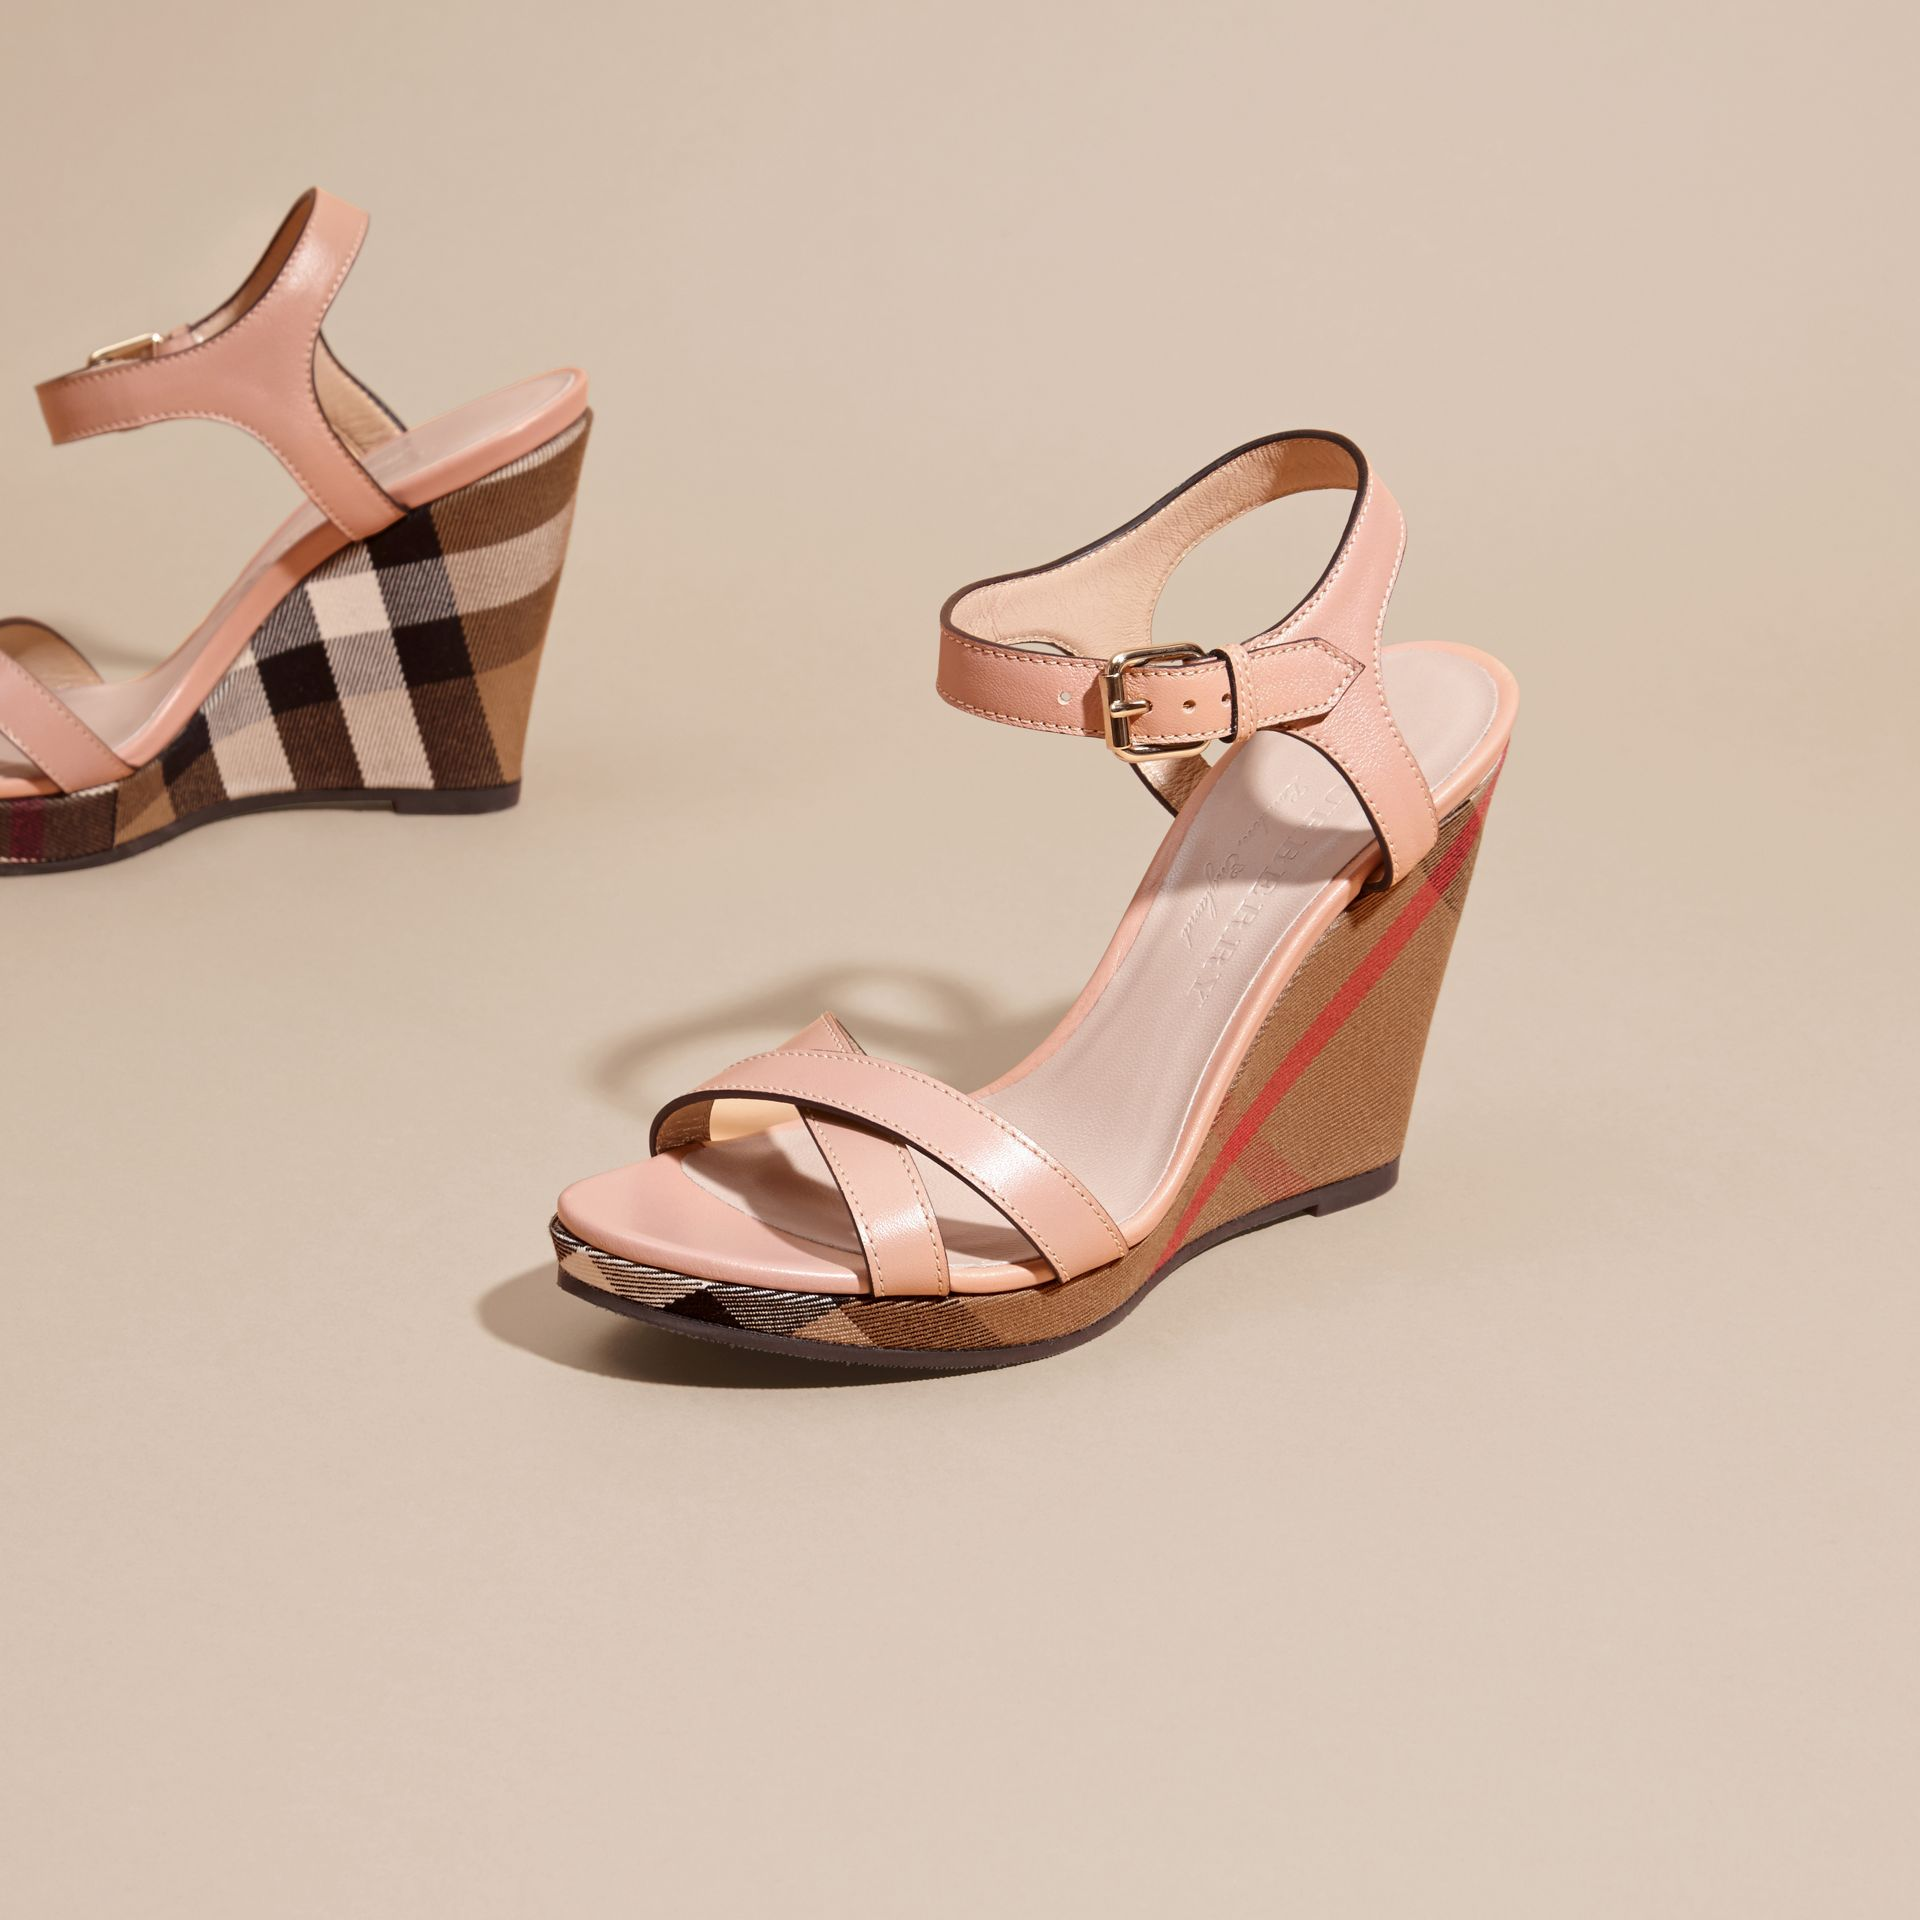 House Check Detail Leather Wedge Sandals in Nude Blush - Women | Burberry Hong Kong - gallery image 3